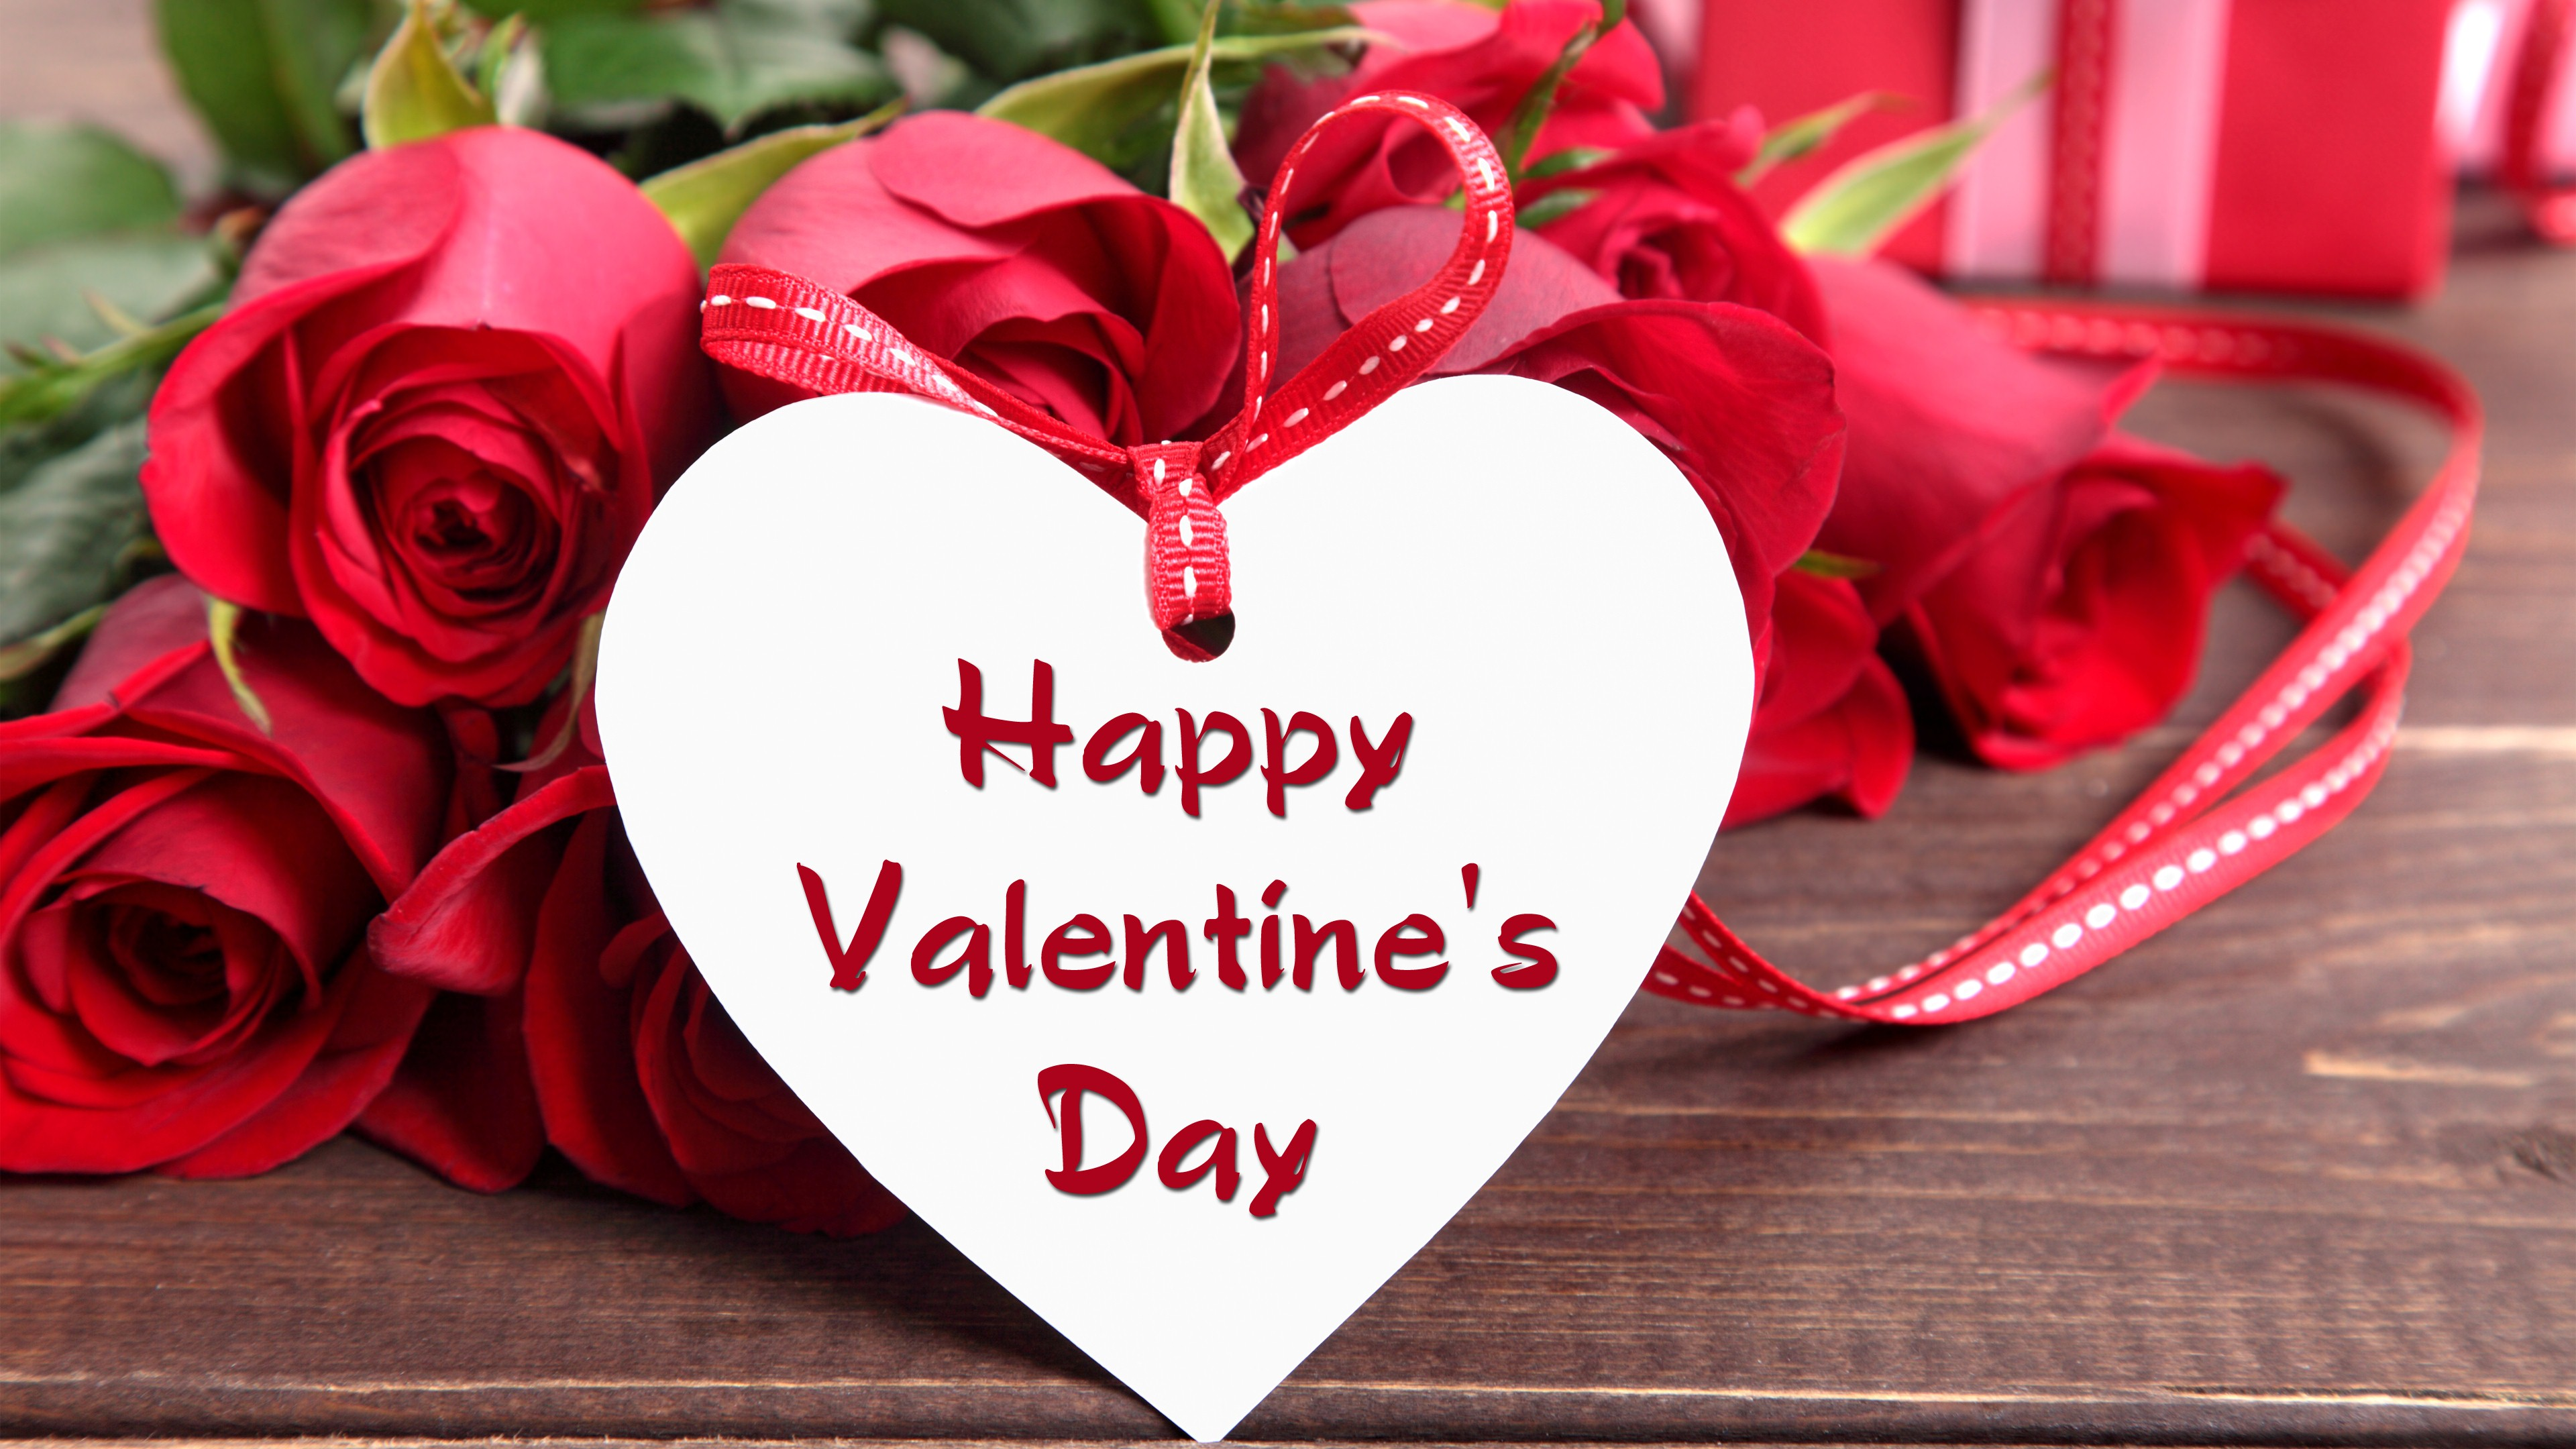 happy valentines day images, pics, photos \u0026 wallpapershappy valentine day pics hd valentine day images